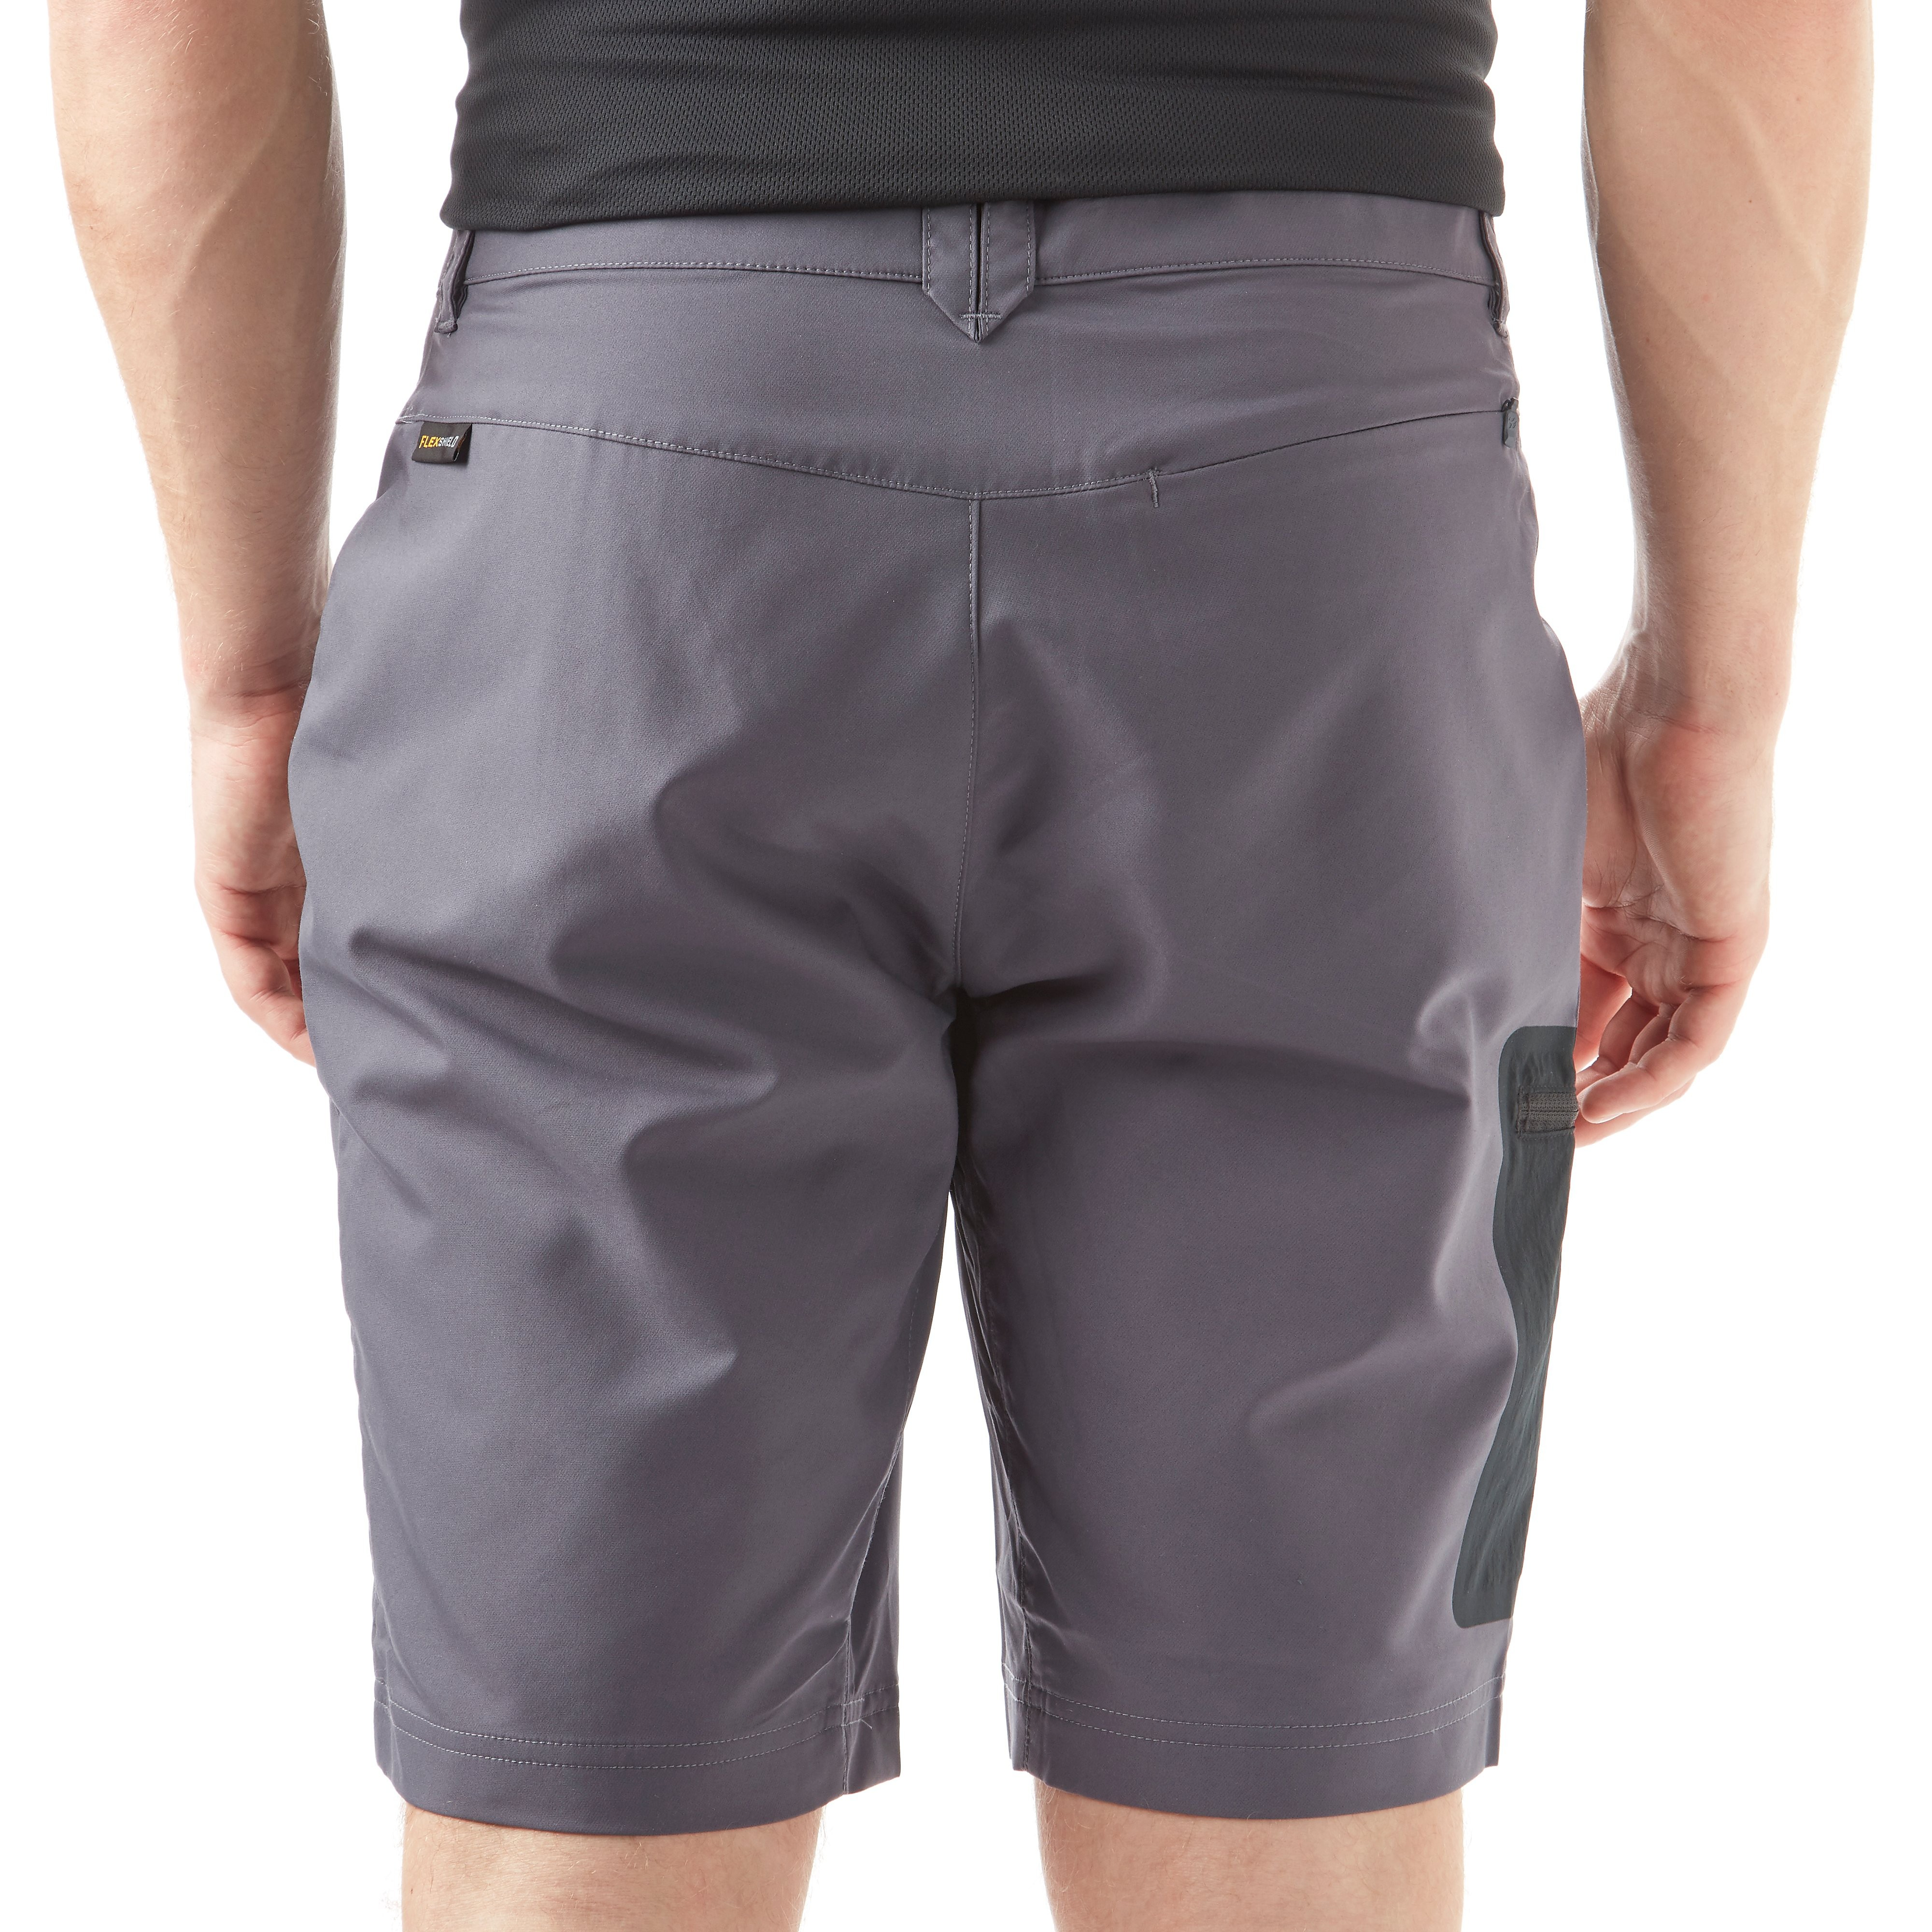 Jack Wolfskin Contrast Pocket Men's Shorts